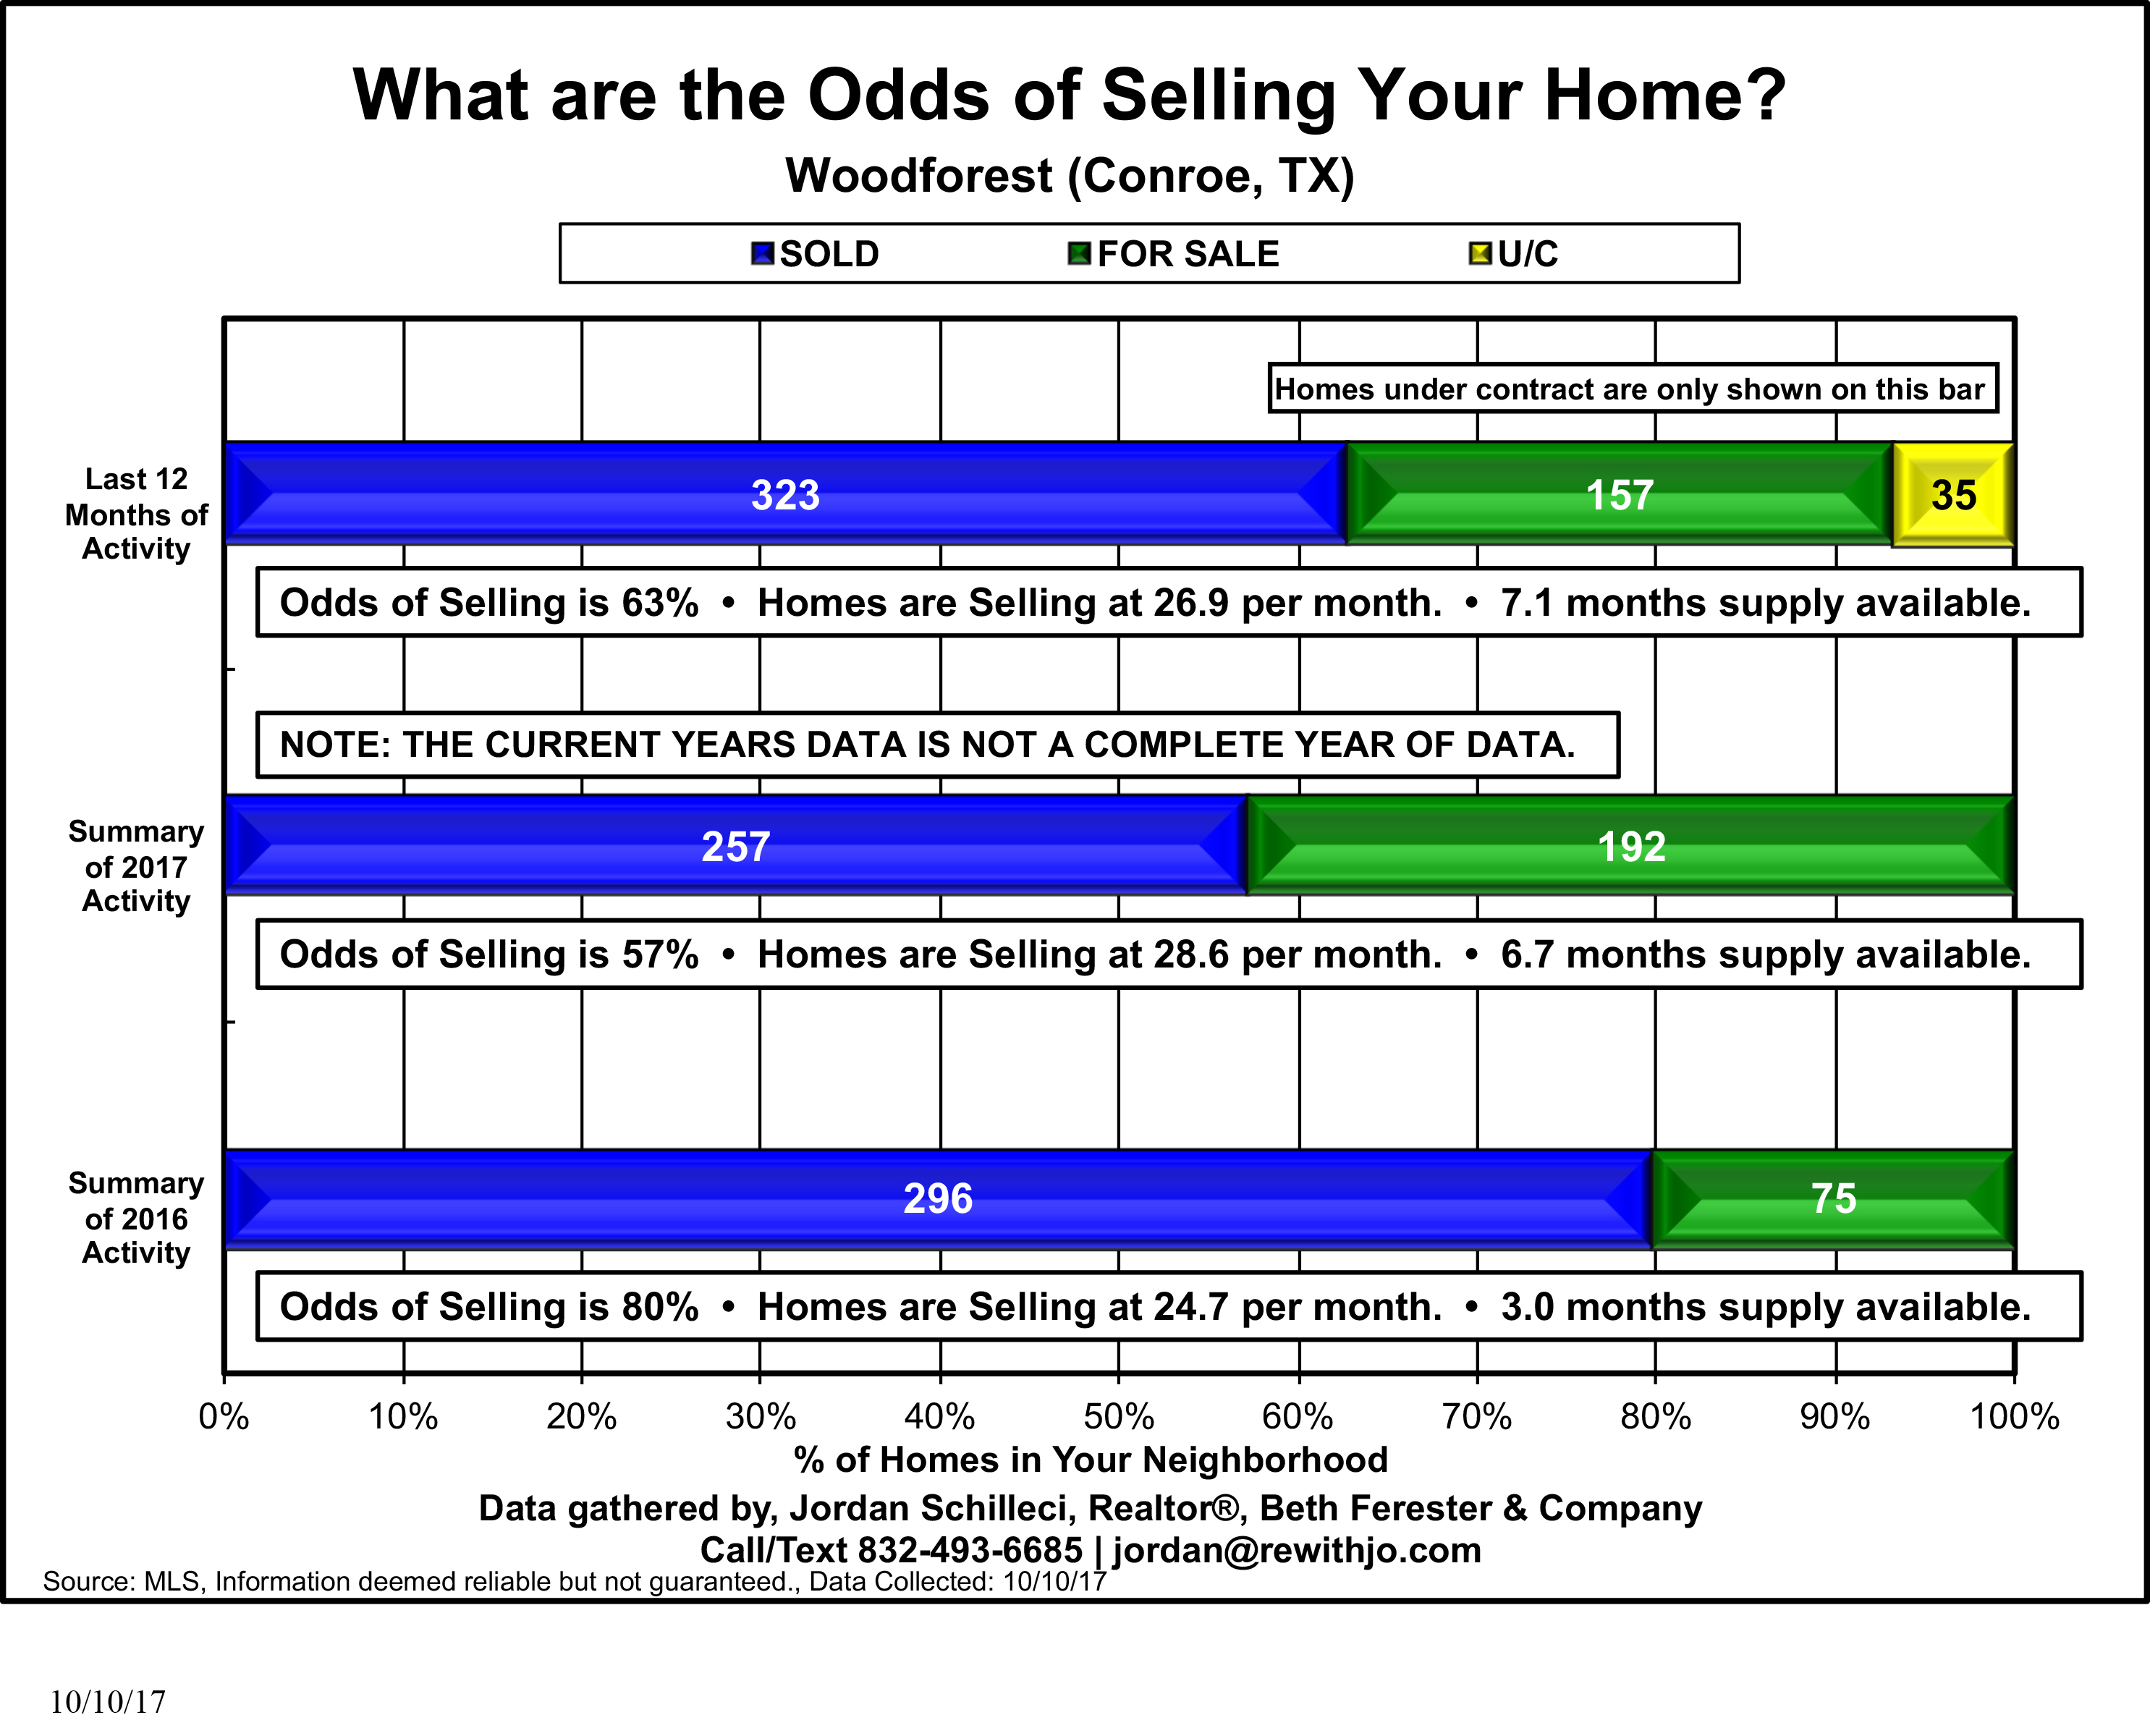 woodforest real estate agent sale homes in conroe this is the market update